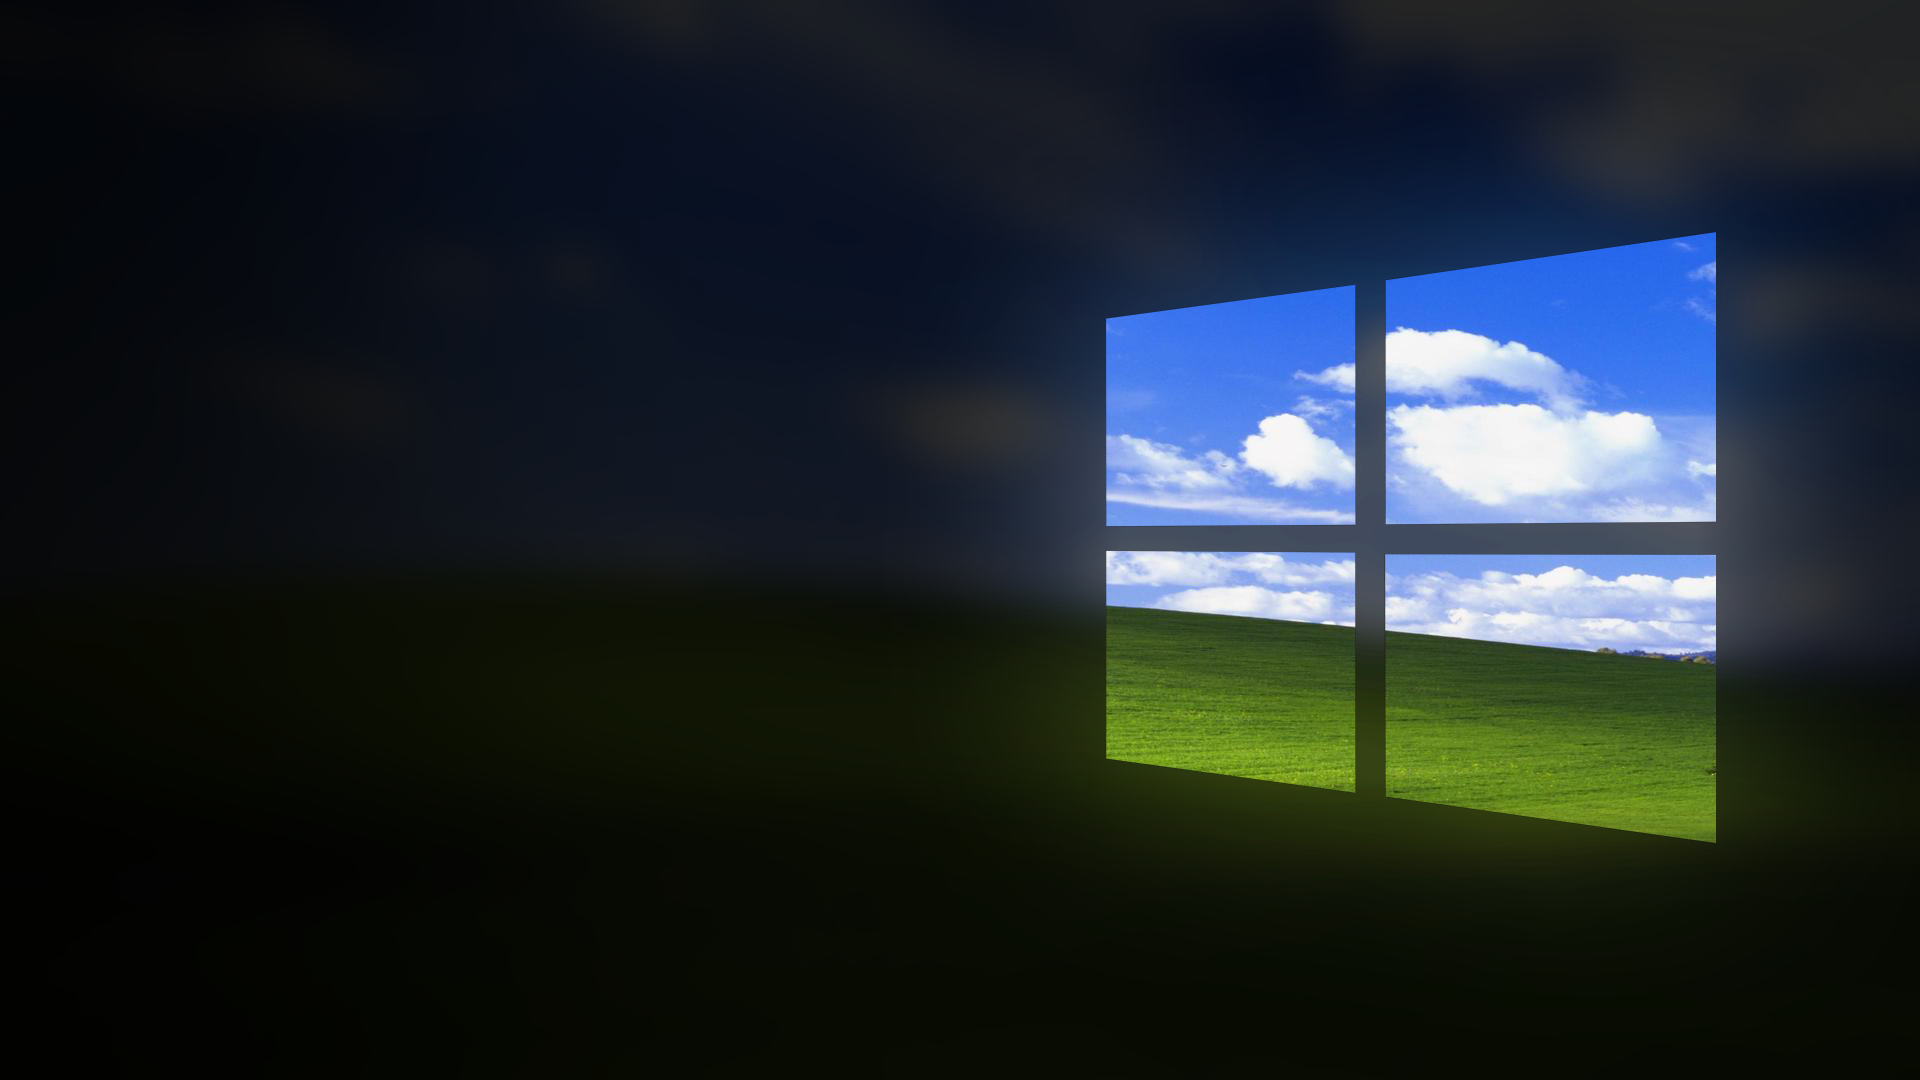 Windows 10 Wallpaper But Windows Xp Is In The Background